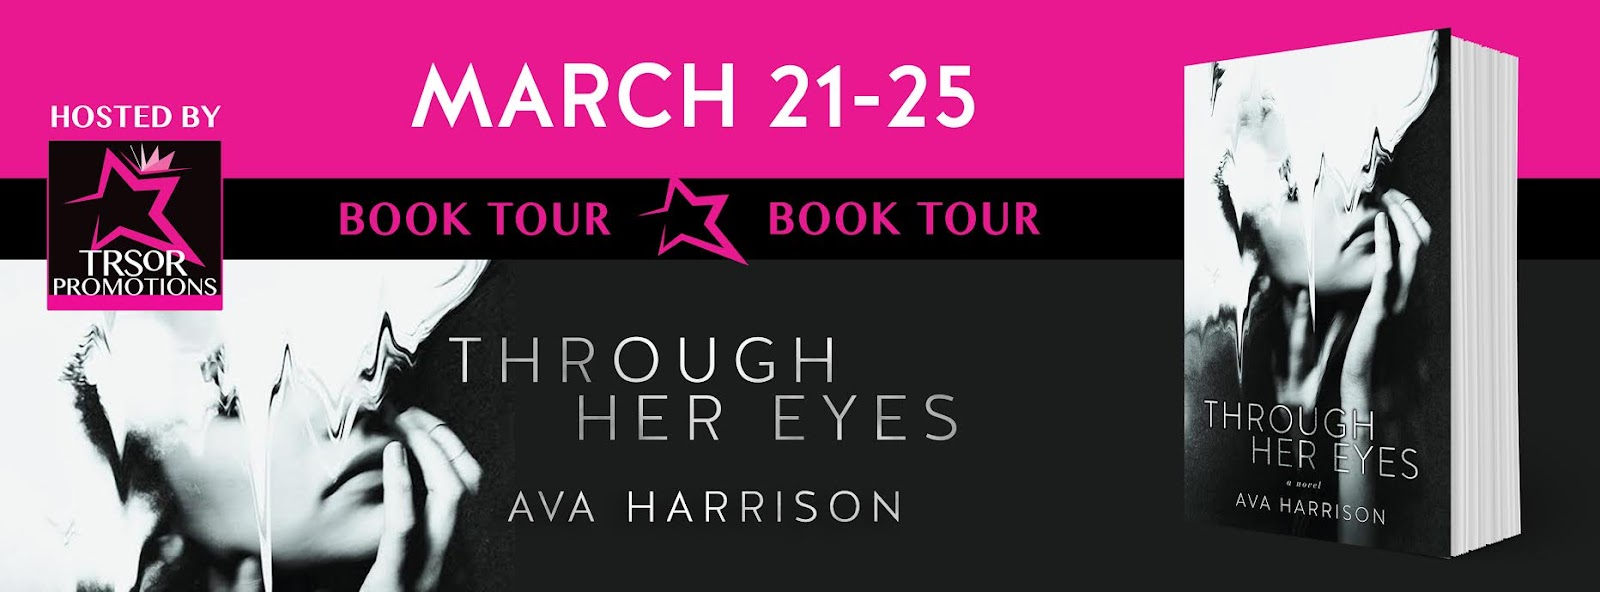 through her eyes book tour.jpg